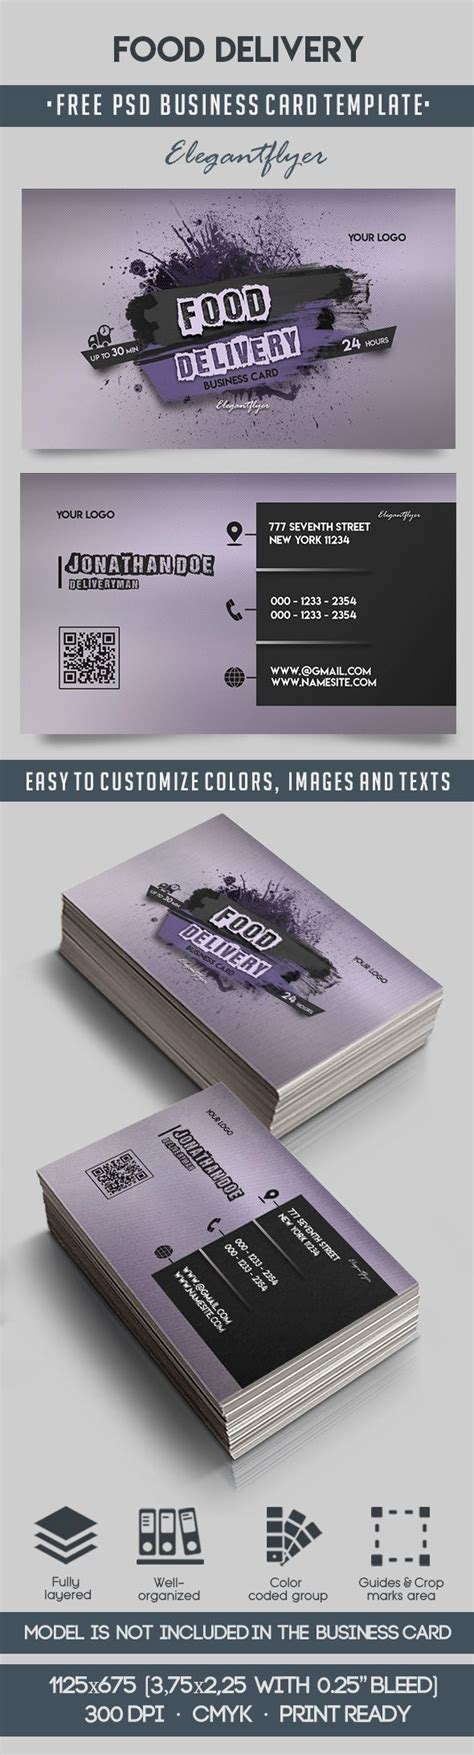 courier business card templates food delivery free business card templates psd by